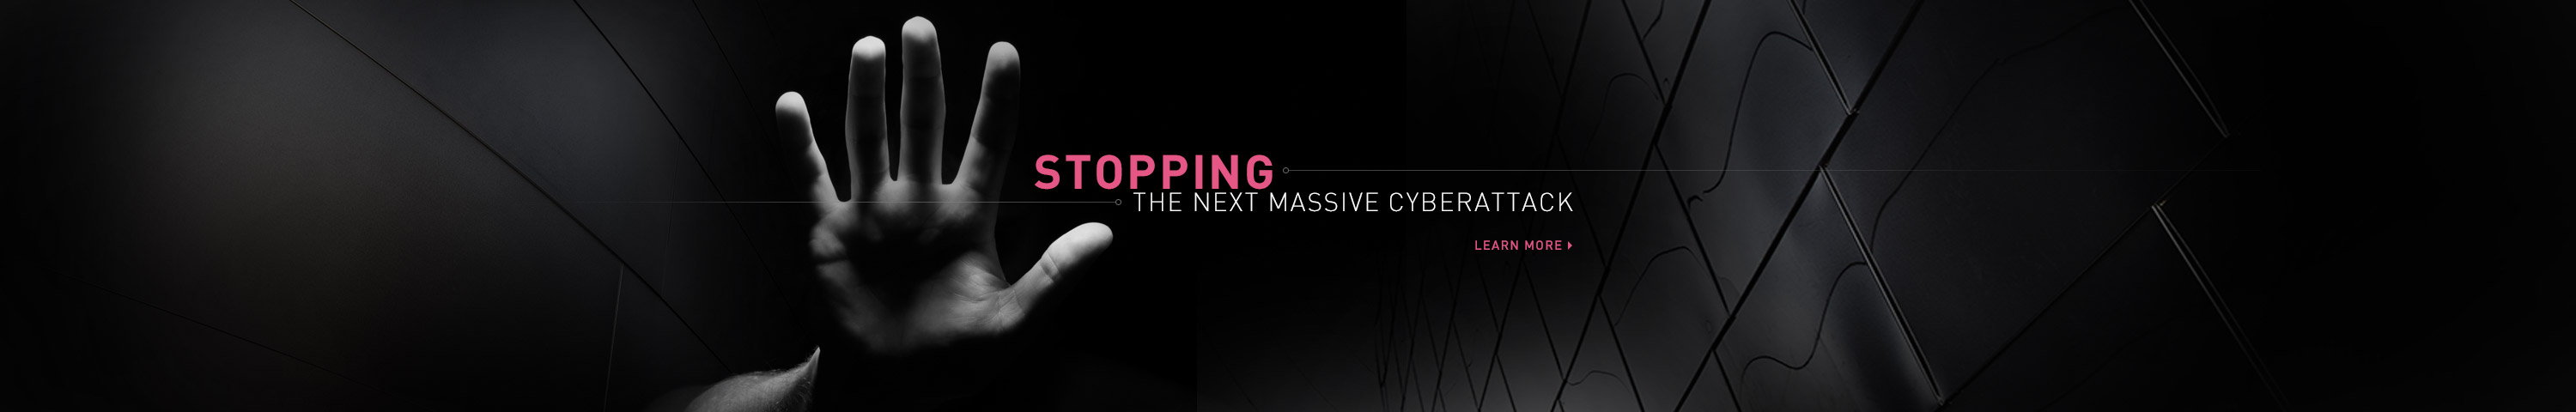 Stopping the next massive cyberattack